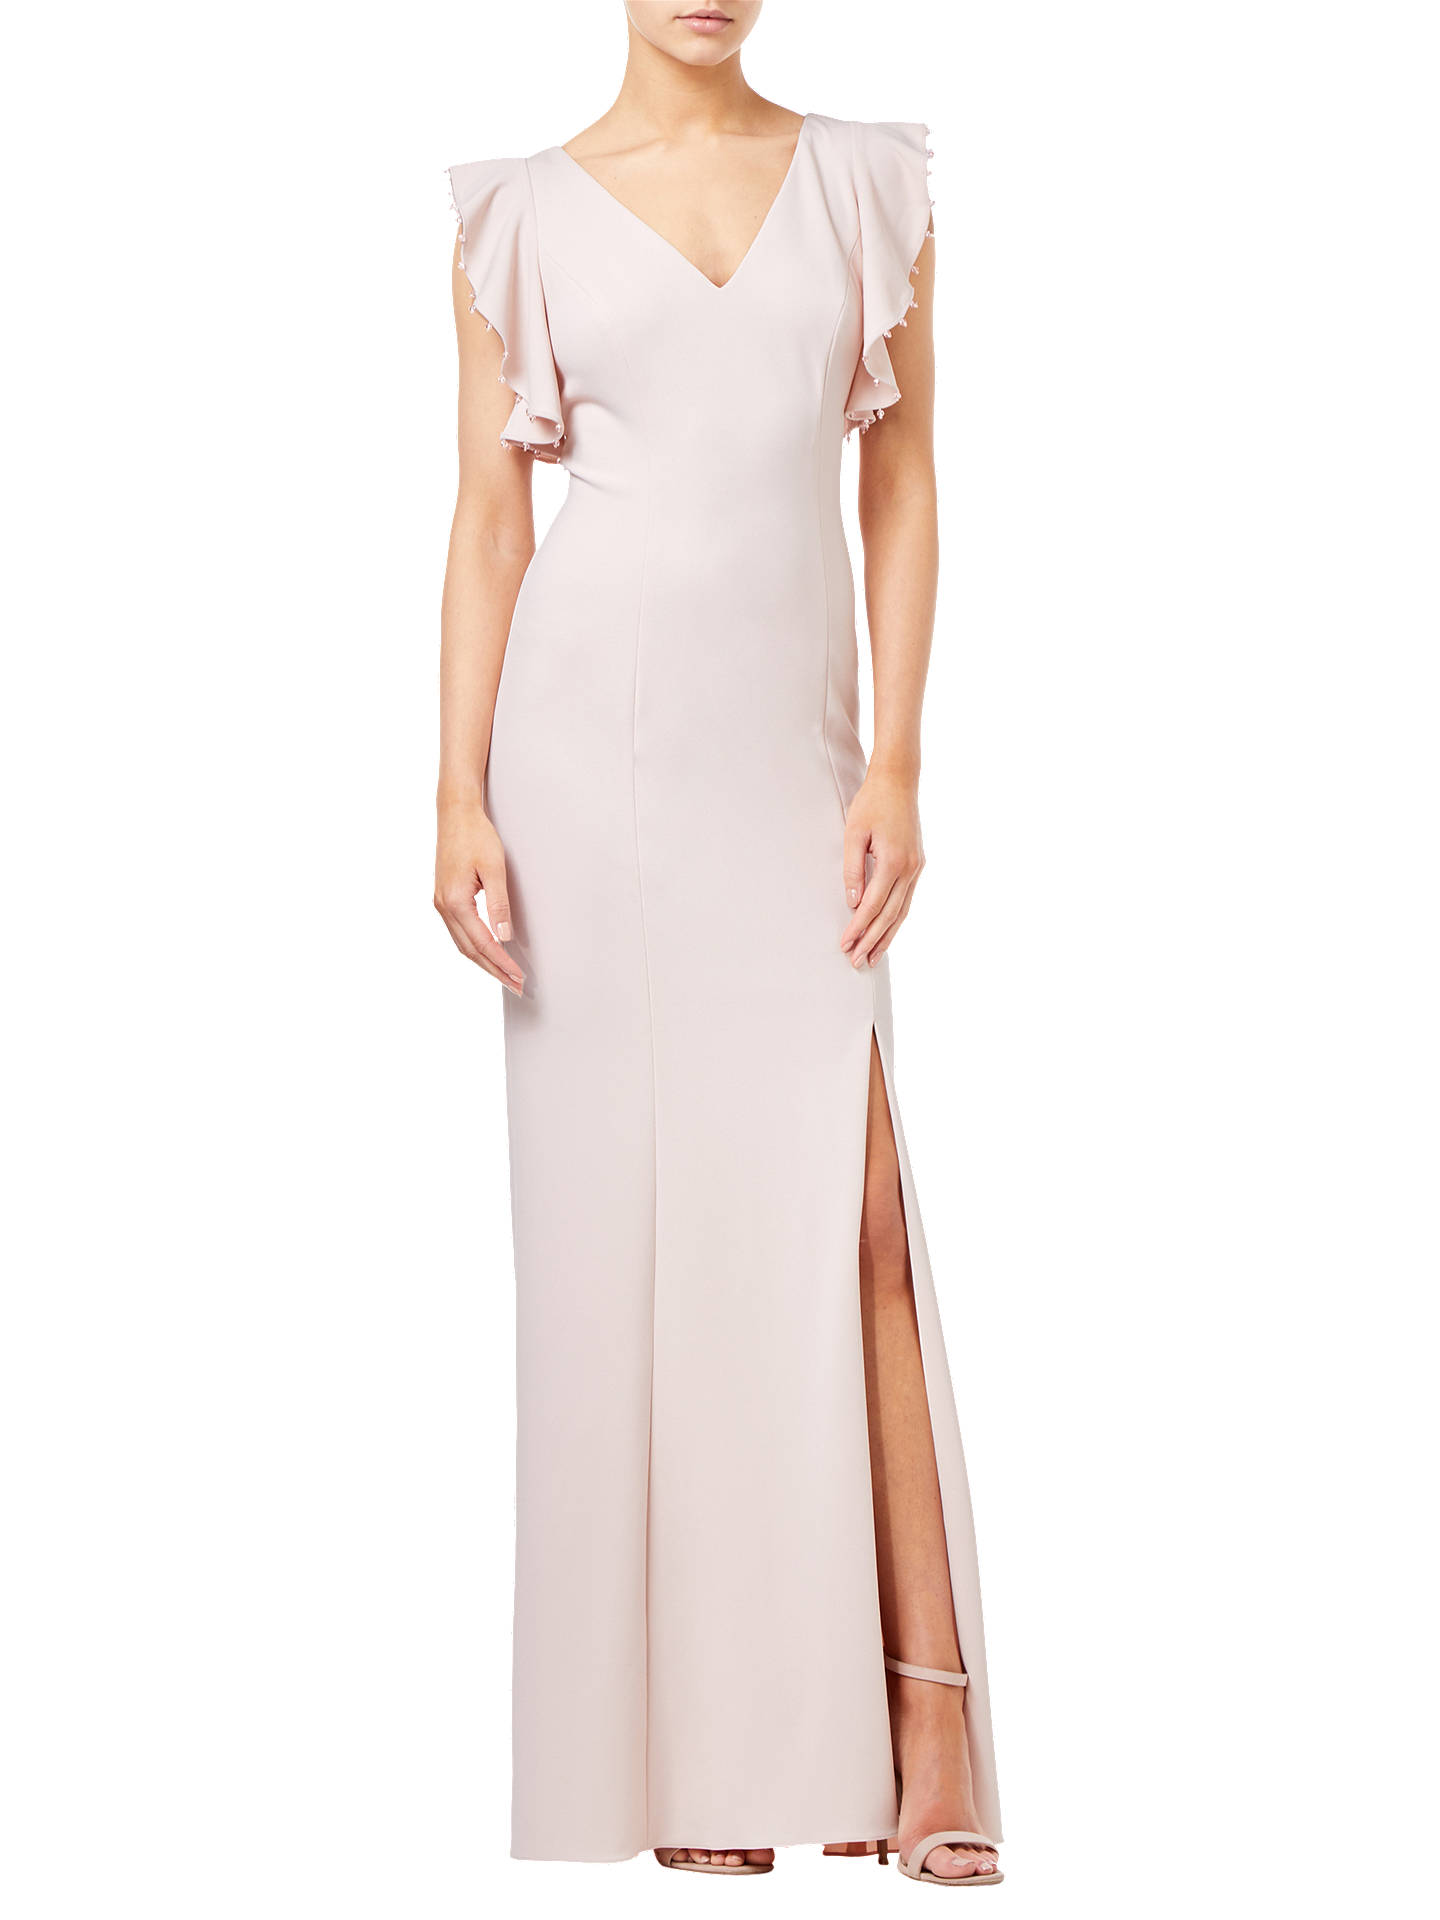 BuyAdrianna Papell Long Crepe Dress, Light Blush, 8 Online at johnlewis.com